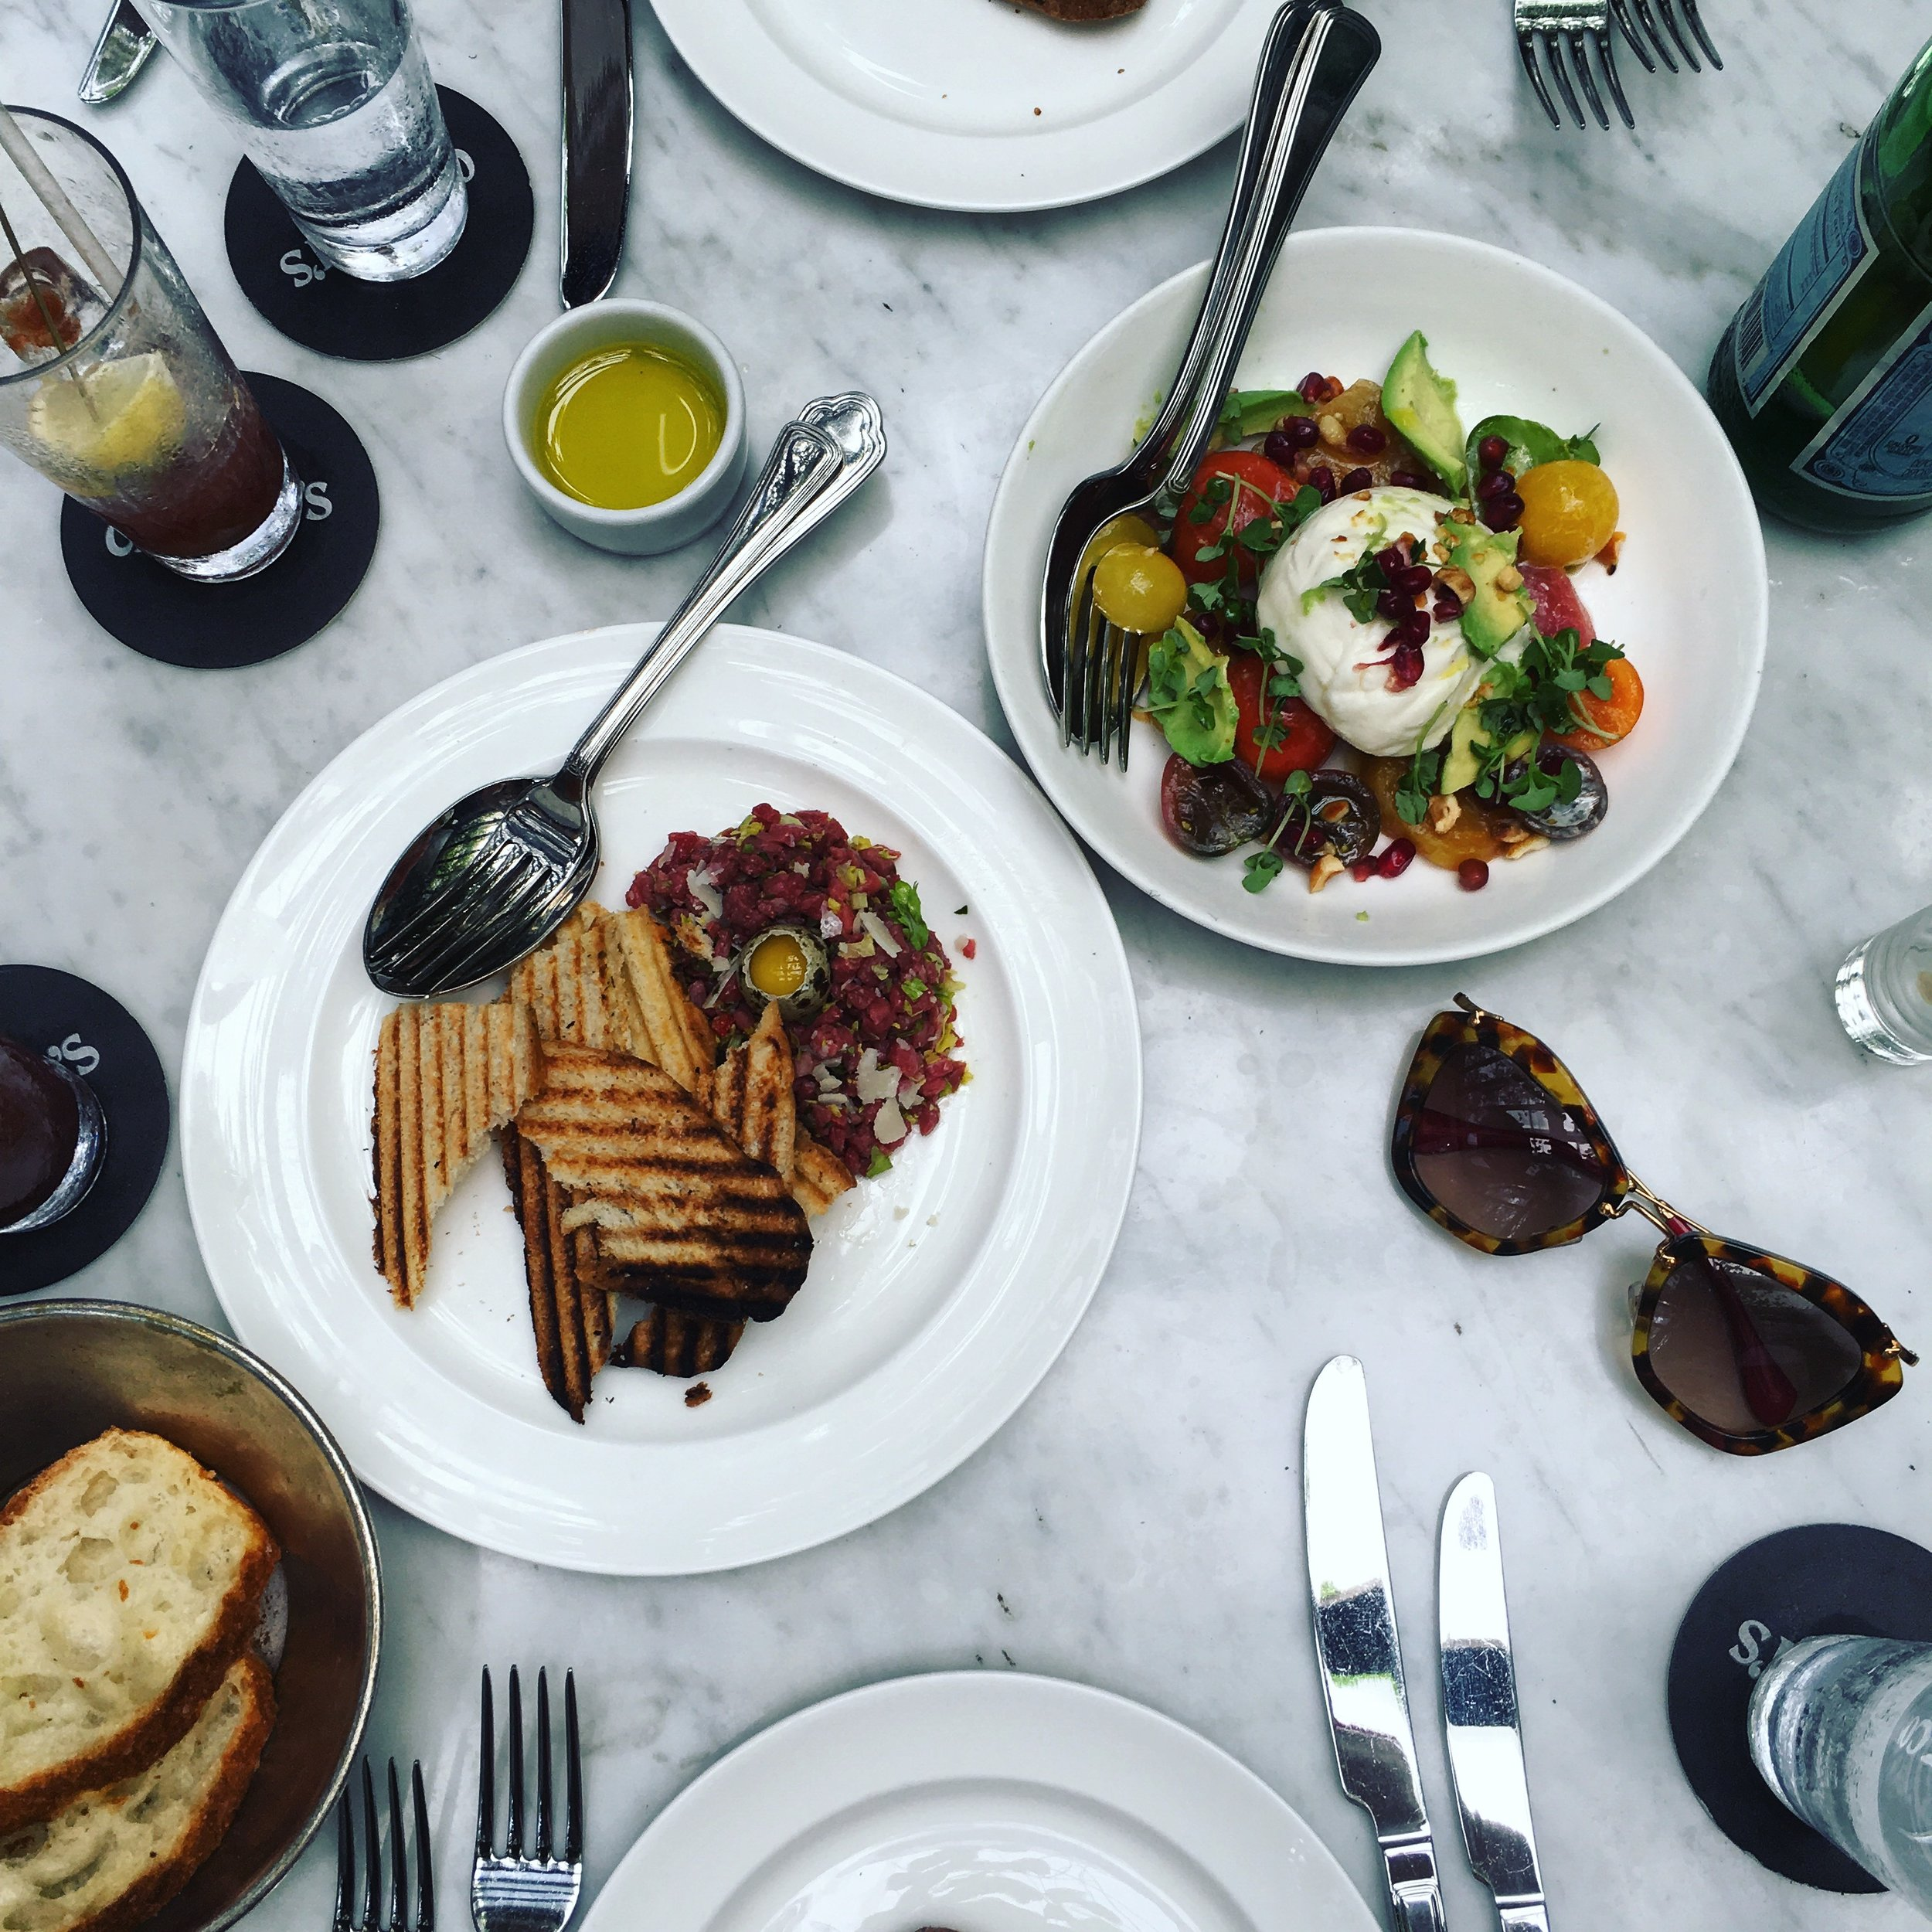 Instagrammable and delicious plates at Cecconi's Miami. Try the Burrata and Steak Tartare.